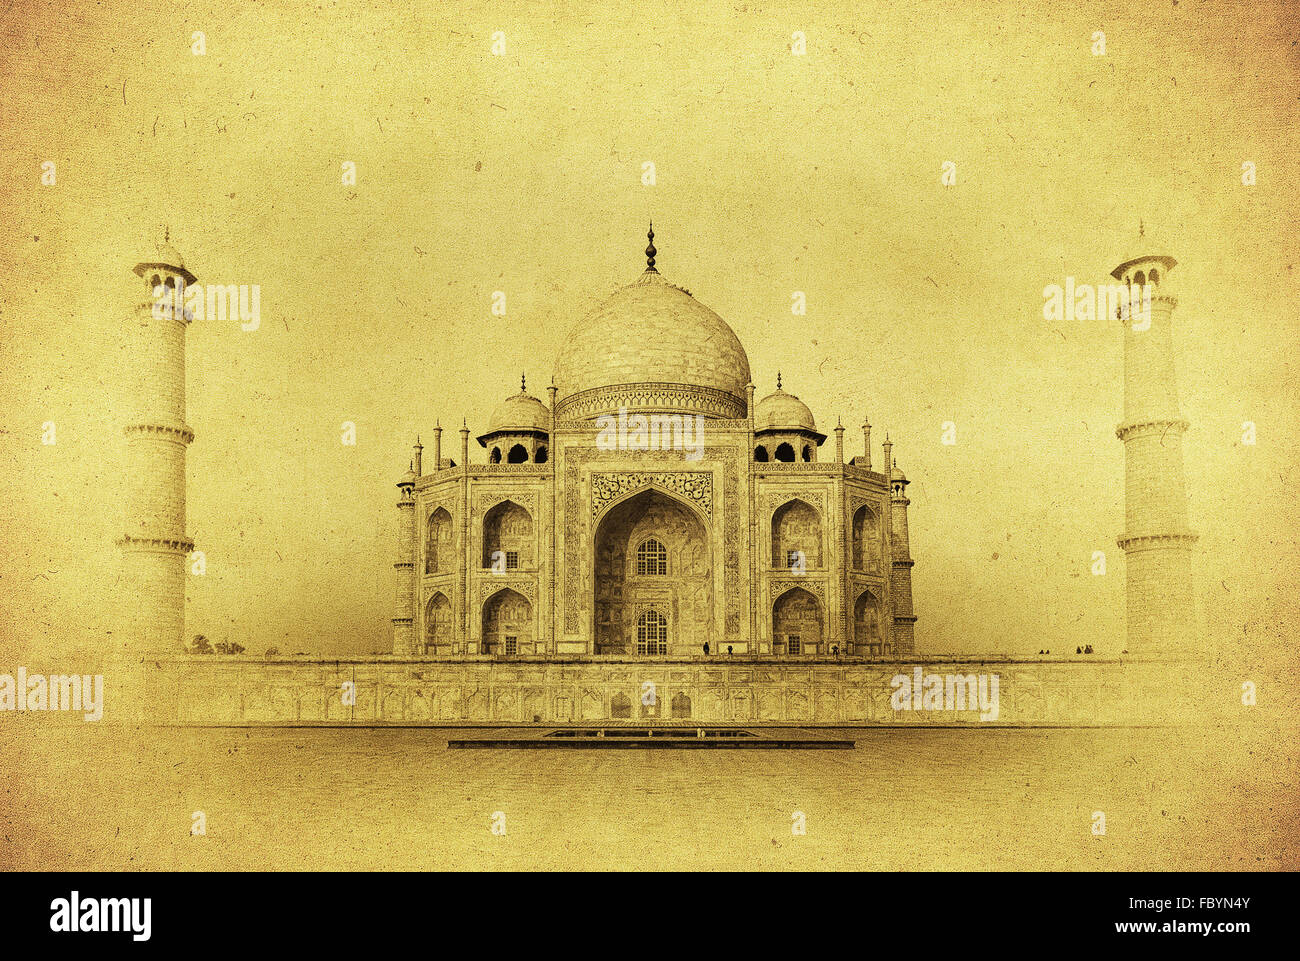 Vintage image of Taj Mahal at sunrise, Agra, India - Stock Image